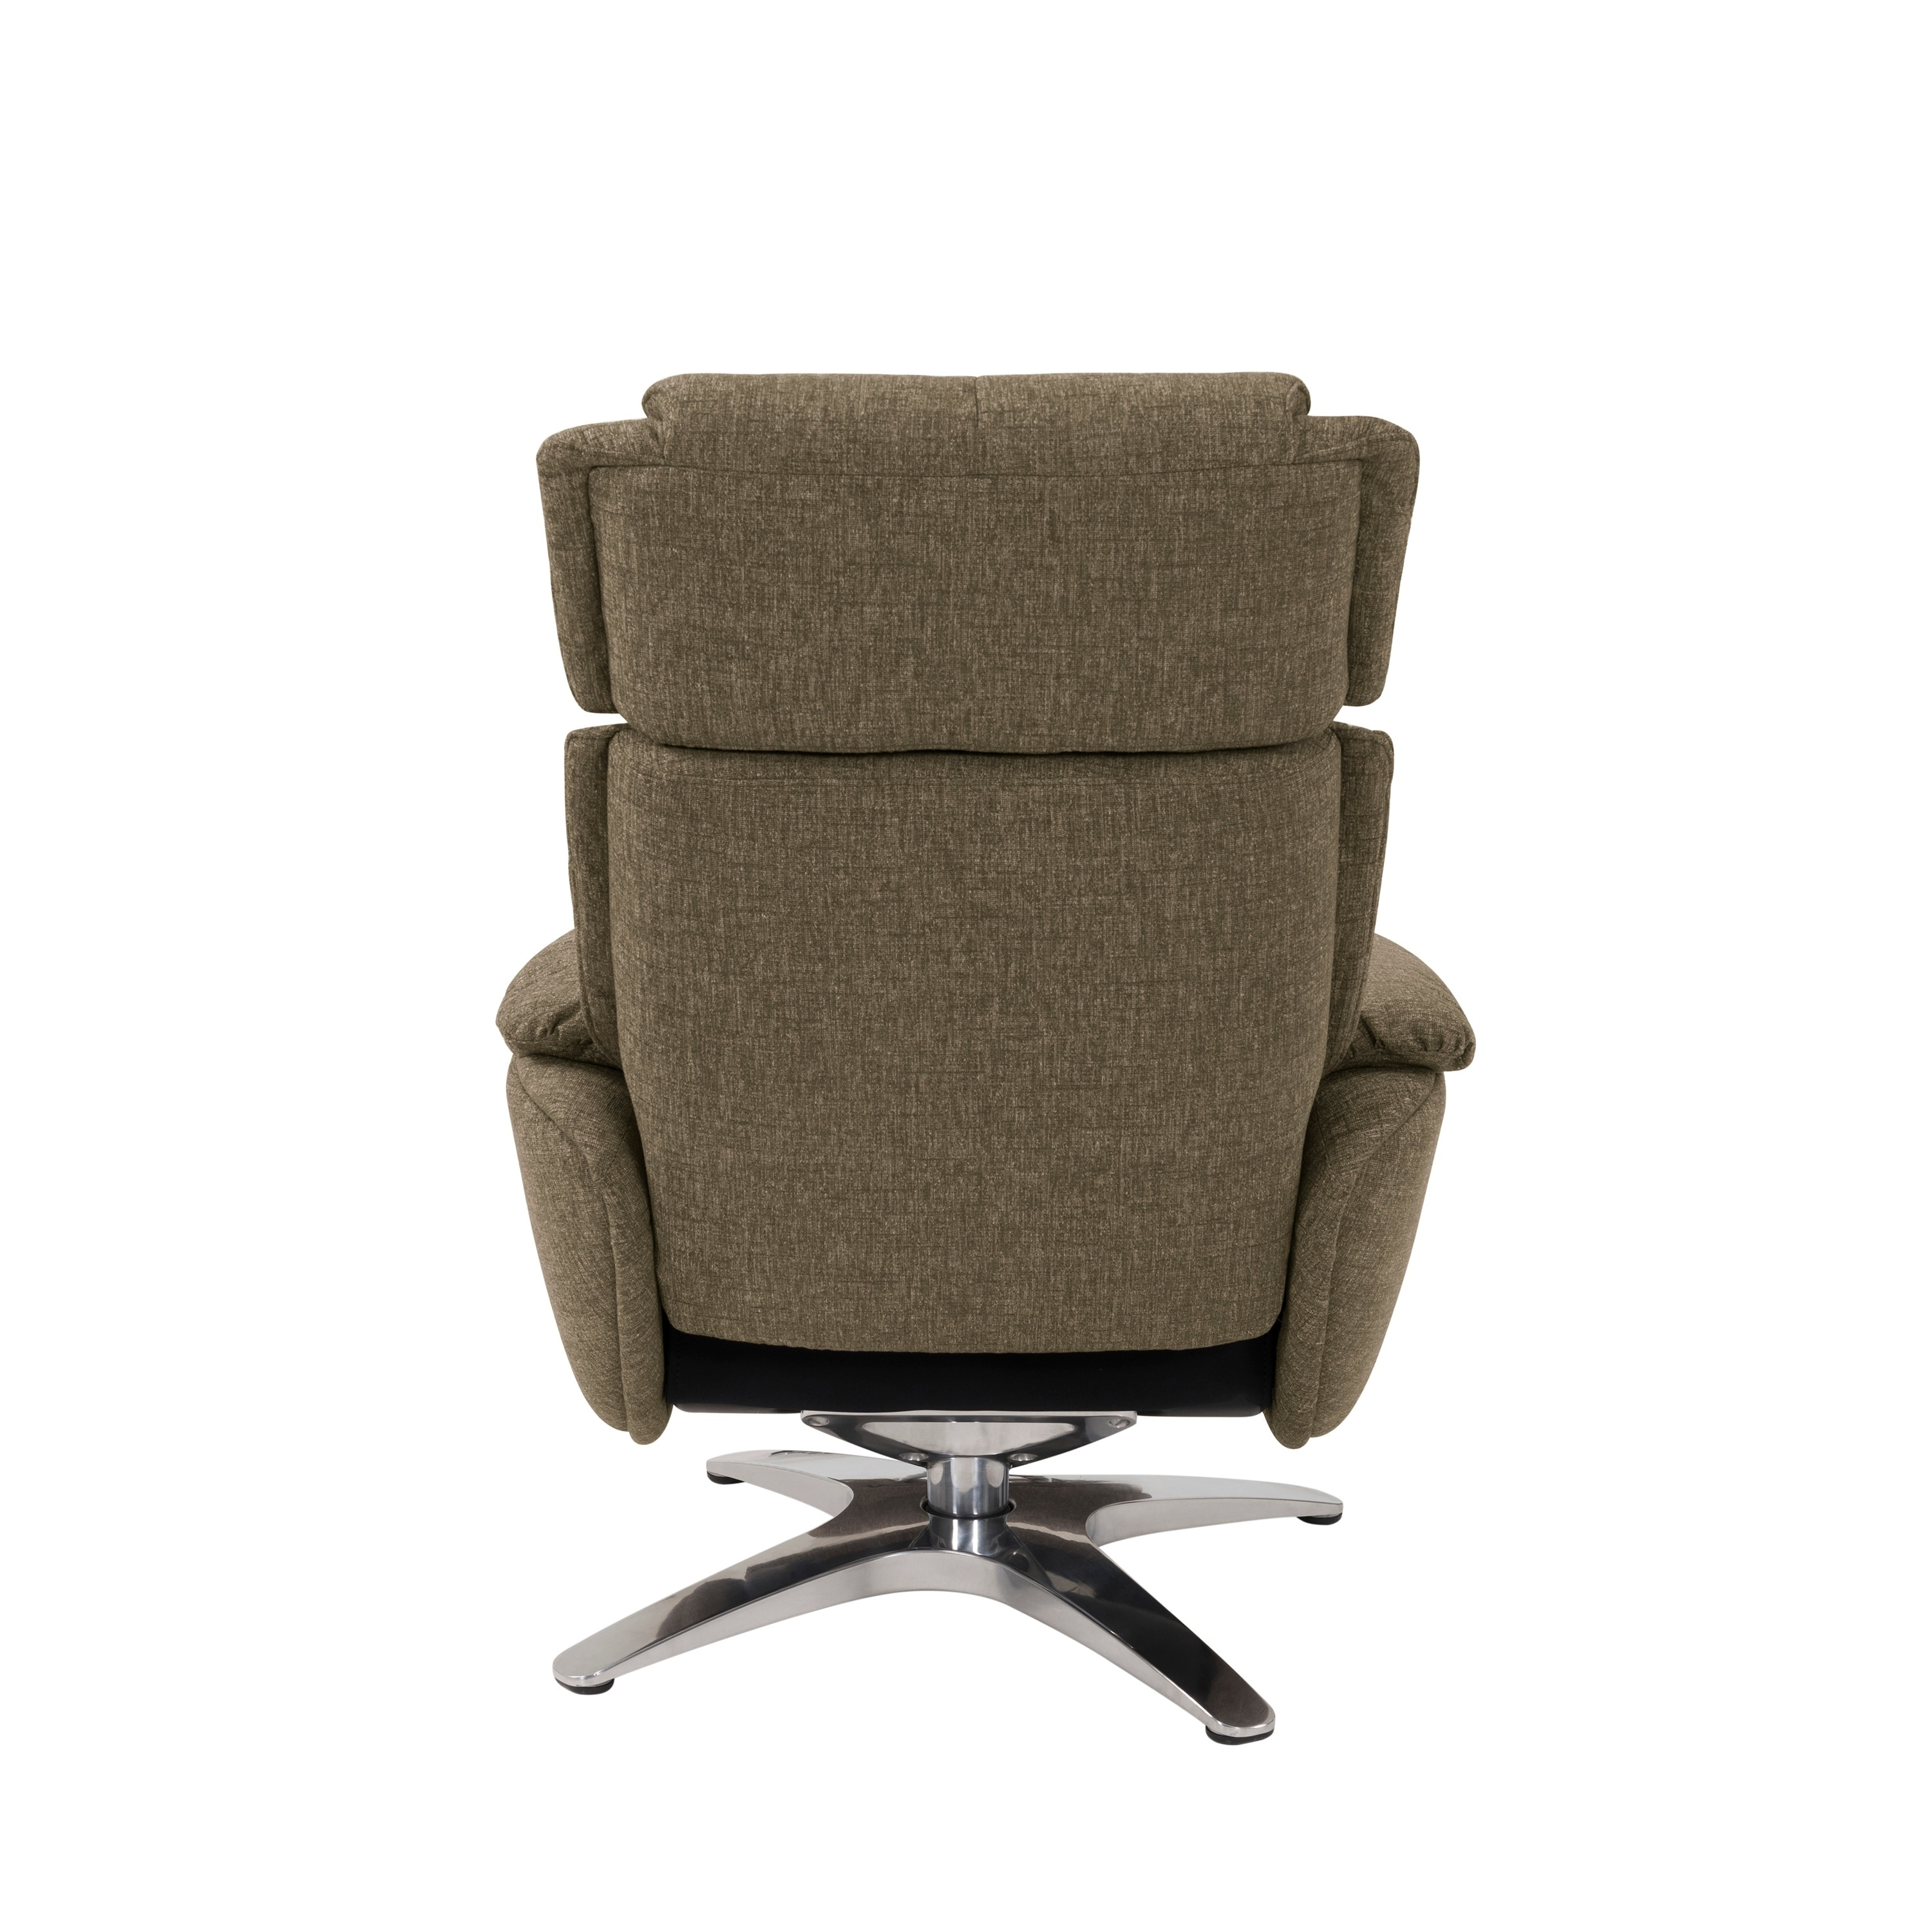 Swivel Recliner Chairs Prolounger Sten Brown Chenille Contemporary Swivel Recliner Chair And Ottoman